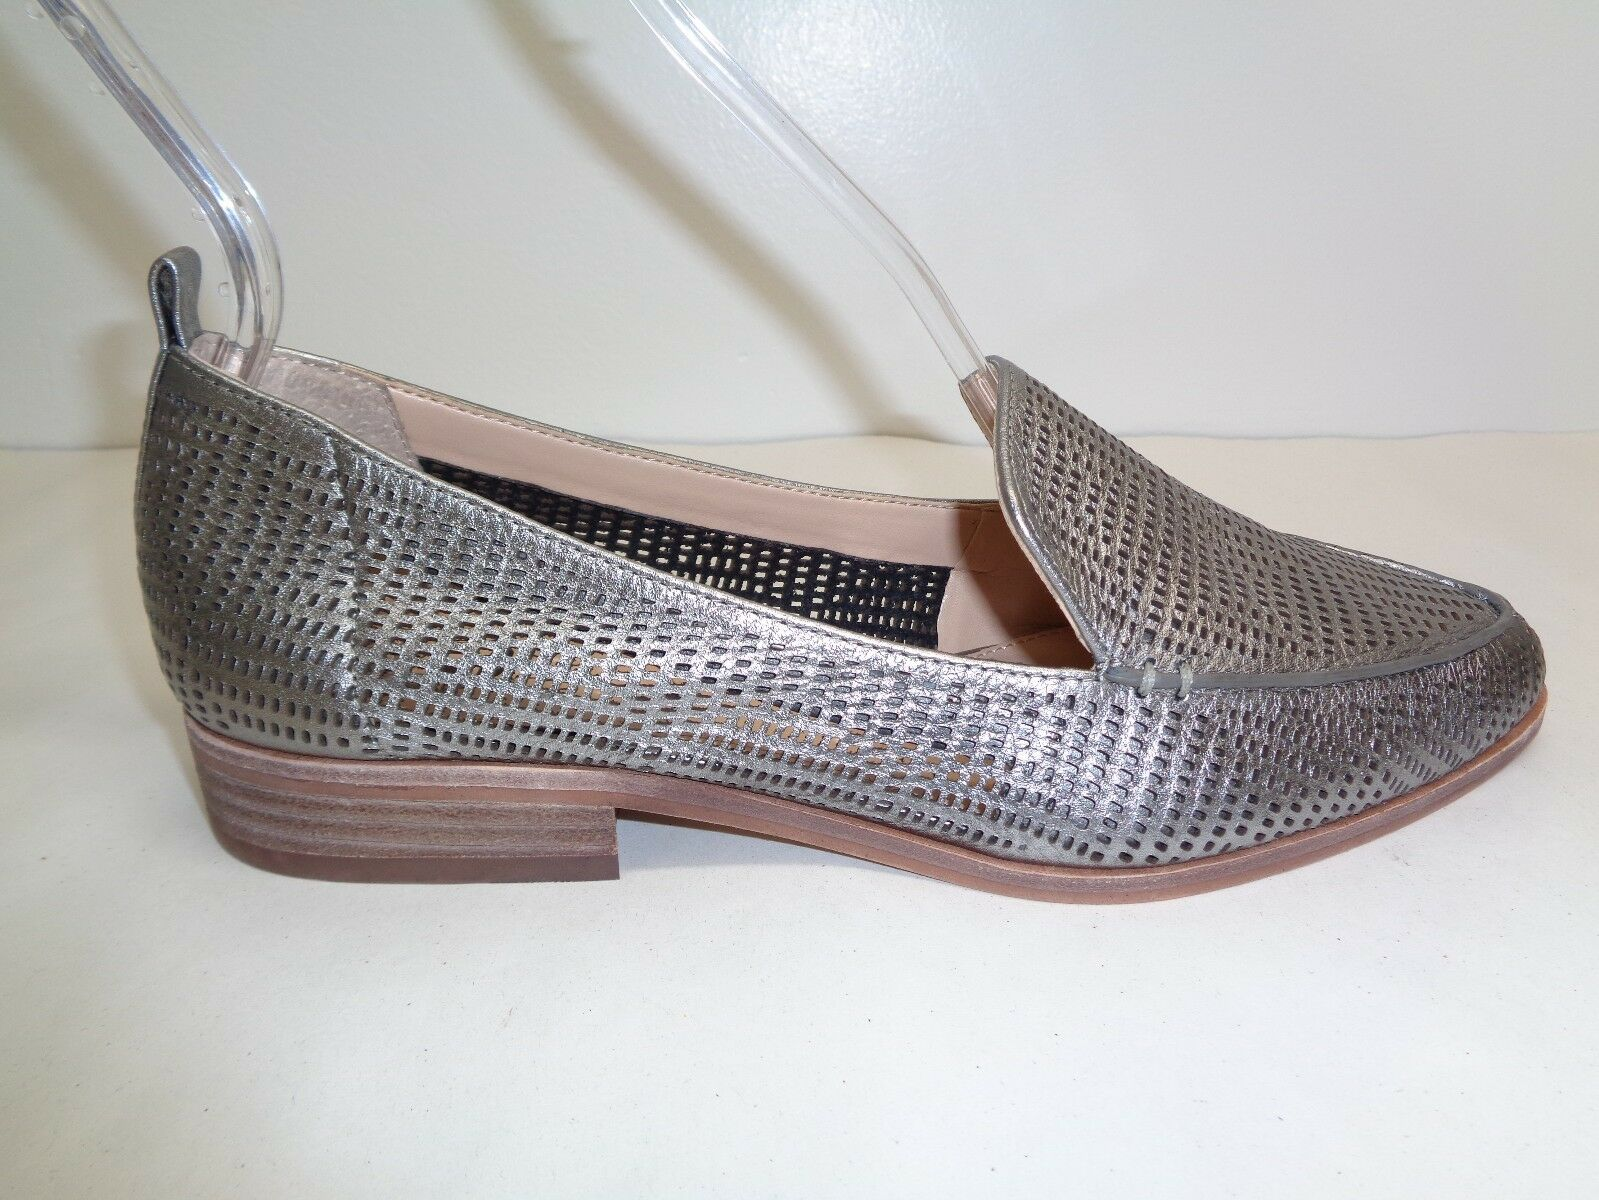 Vince Camuto Size Size Size 8.5 M KADE Silver Perforated Leather Loafers New Womens shoes ea6f73